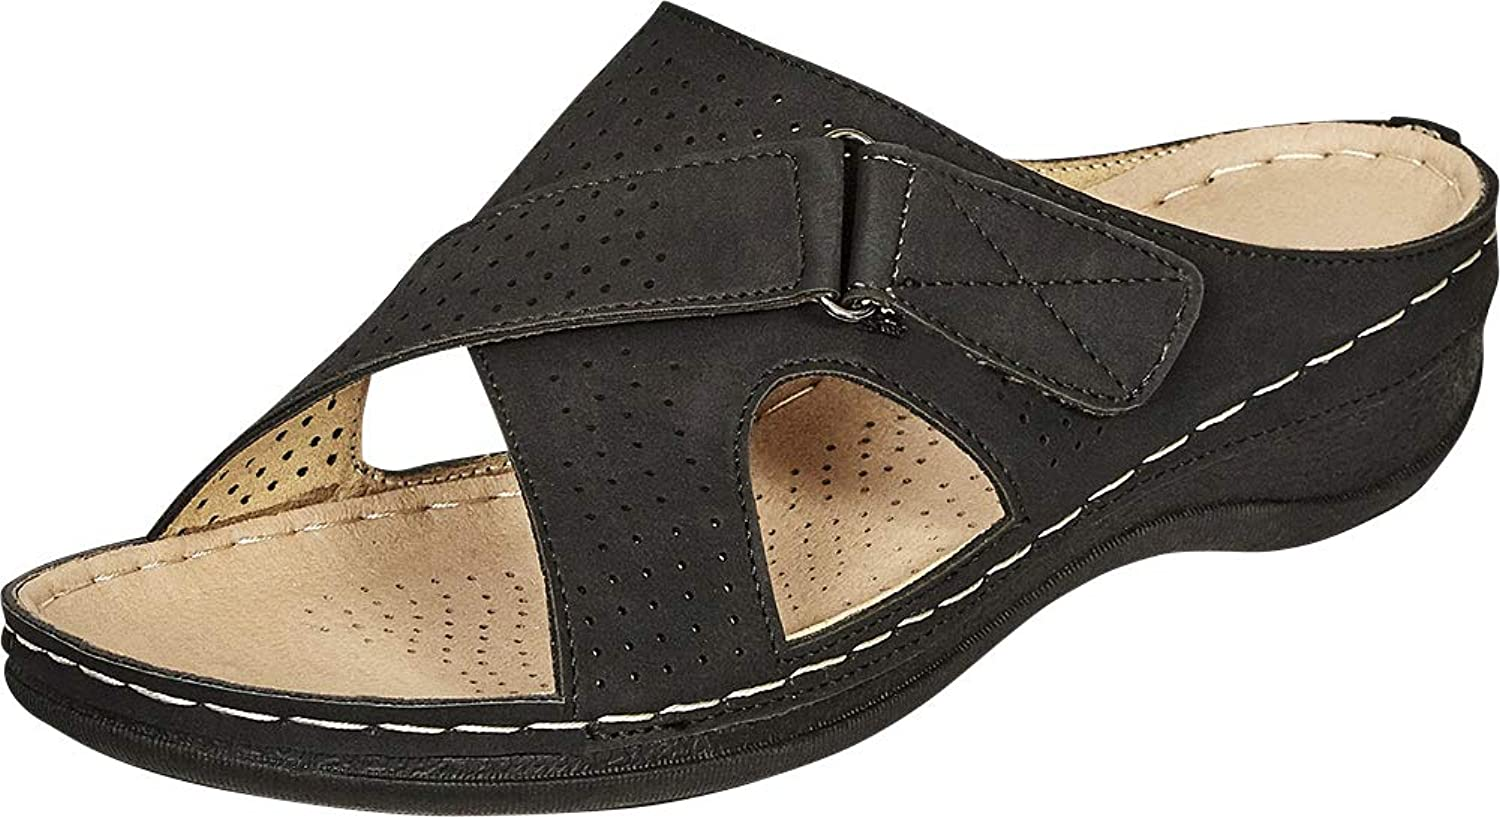 Cambridge Select Women's Open Toe Perforated Slip-On Comfort Flat Slide Sandal